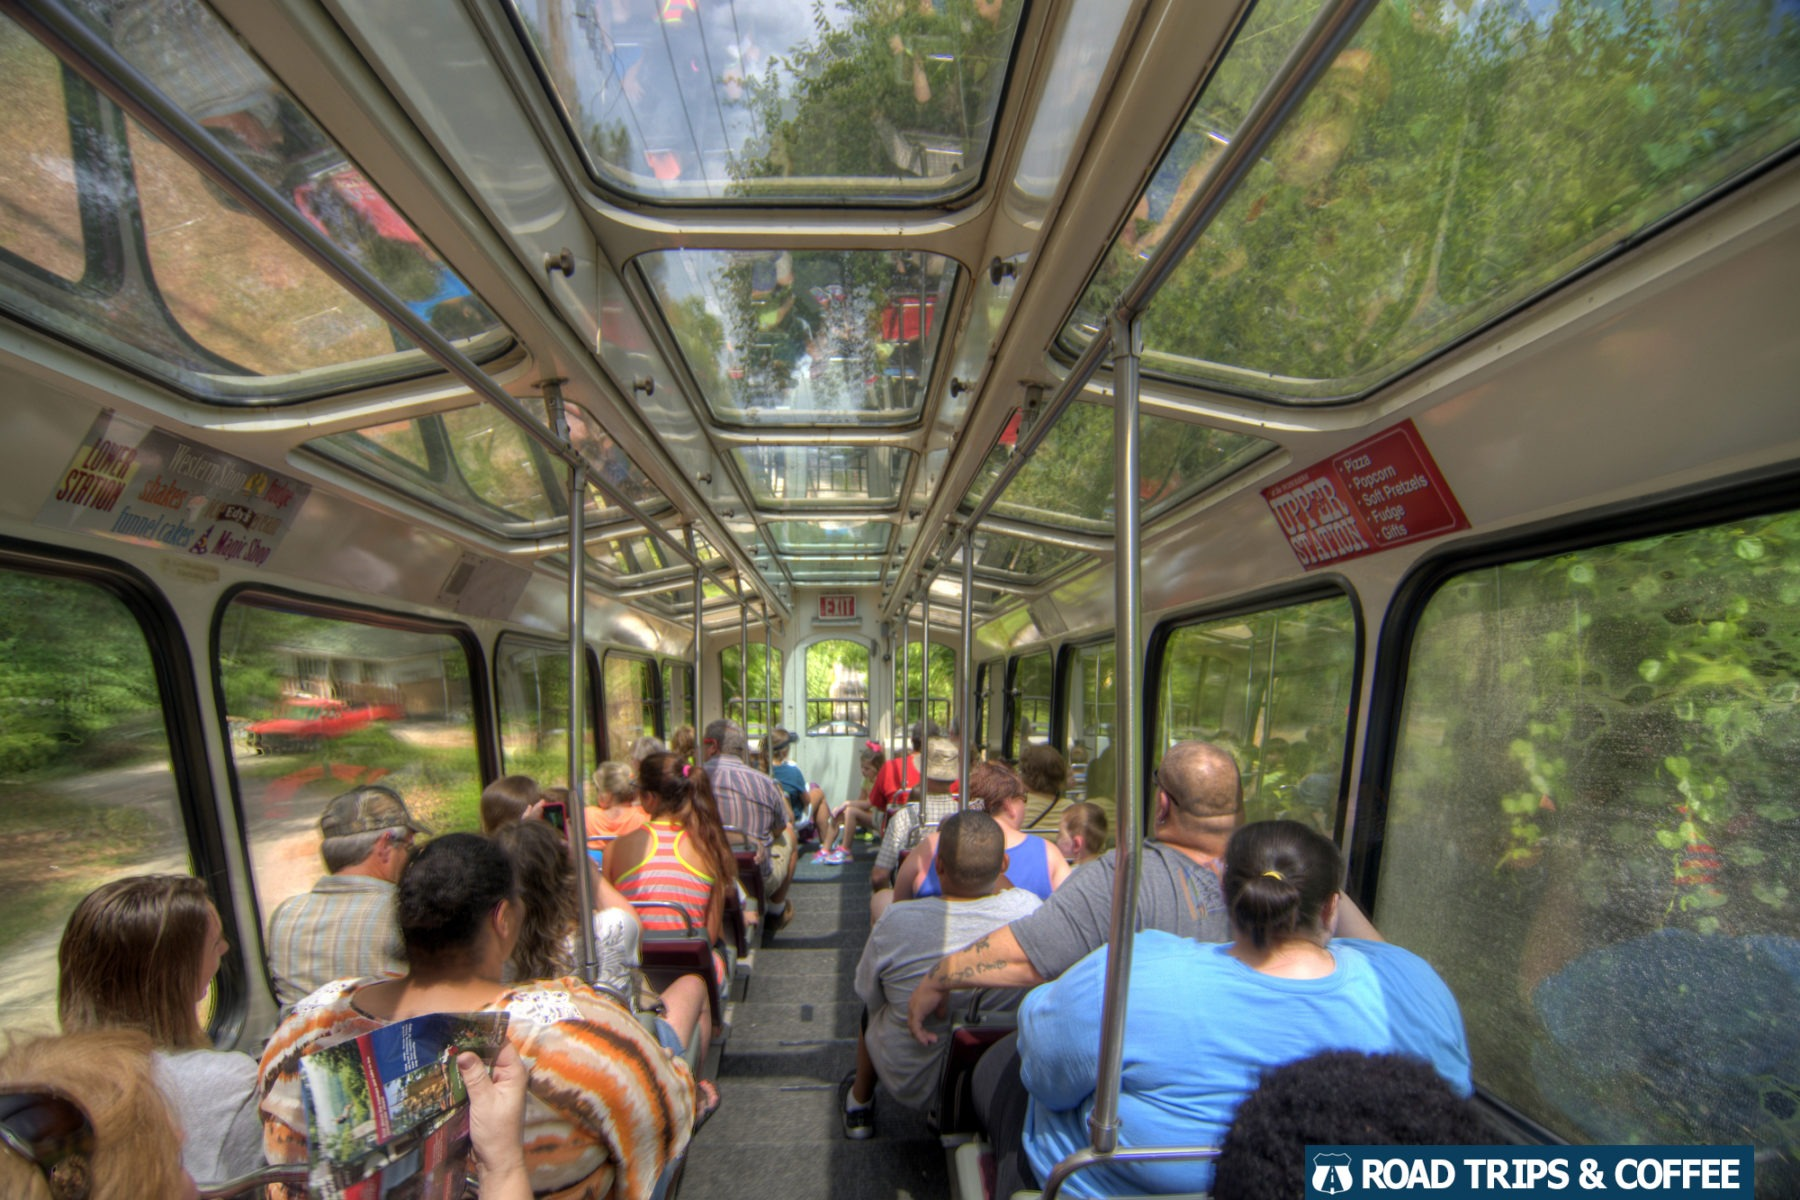 View inside the train car on the Lookout Mountain Incline Railway in Chattanooga, Tennessee